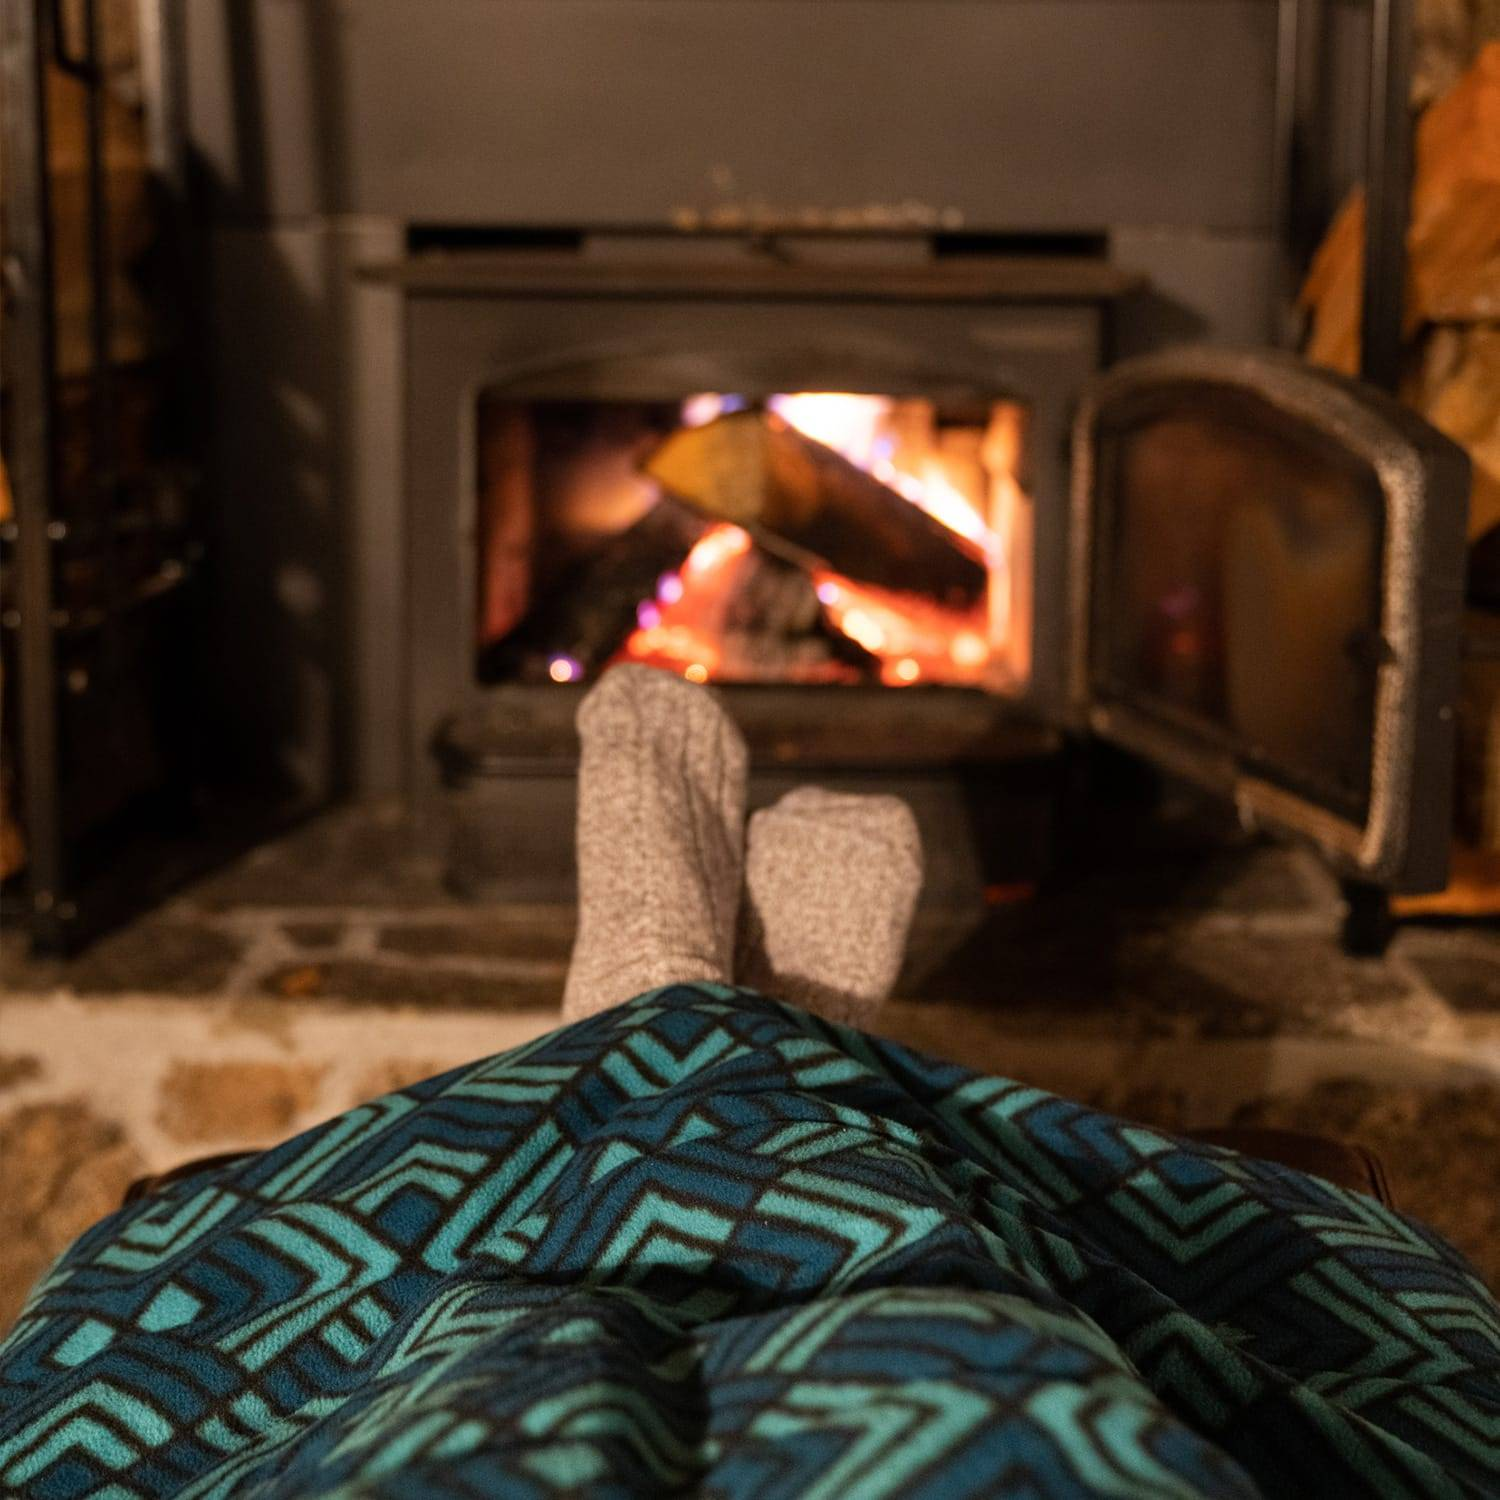 Legs under a throw blanket in front of a fire